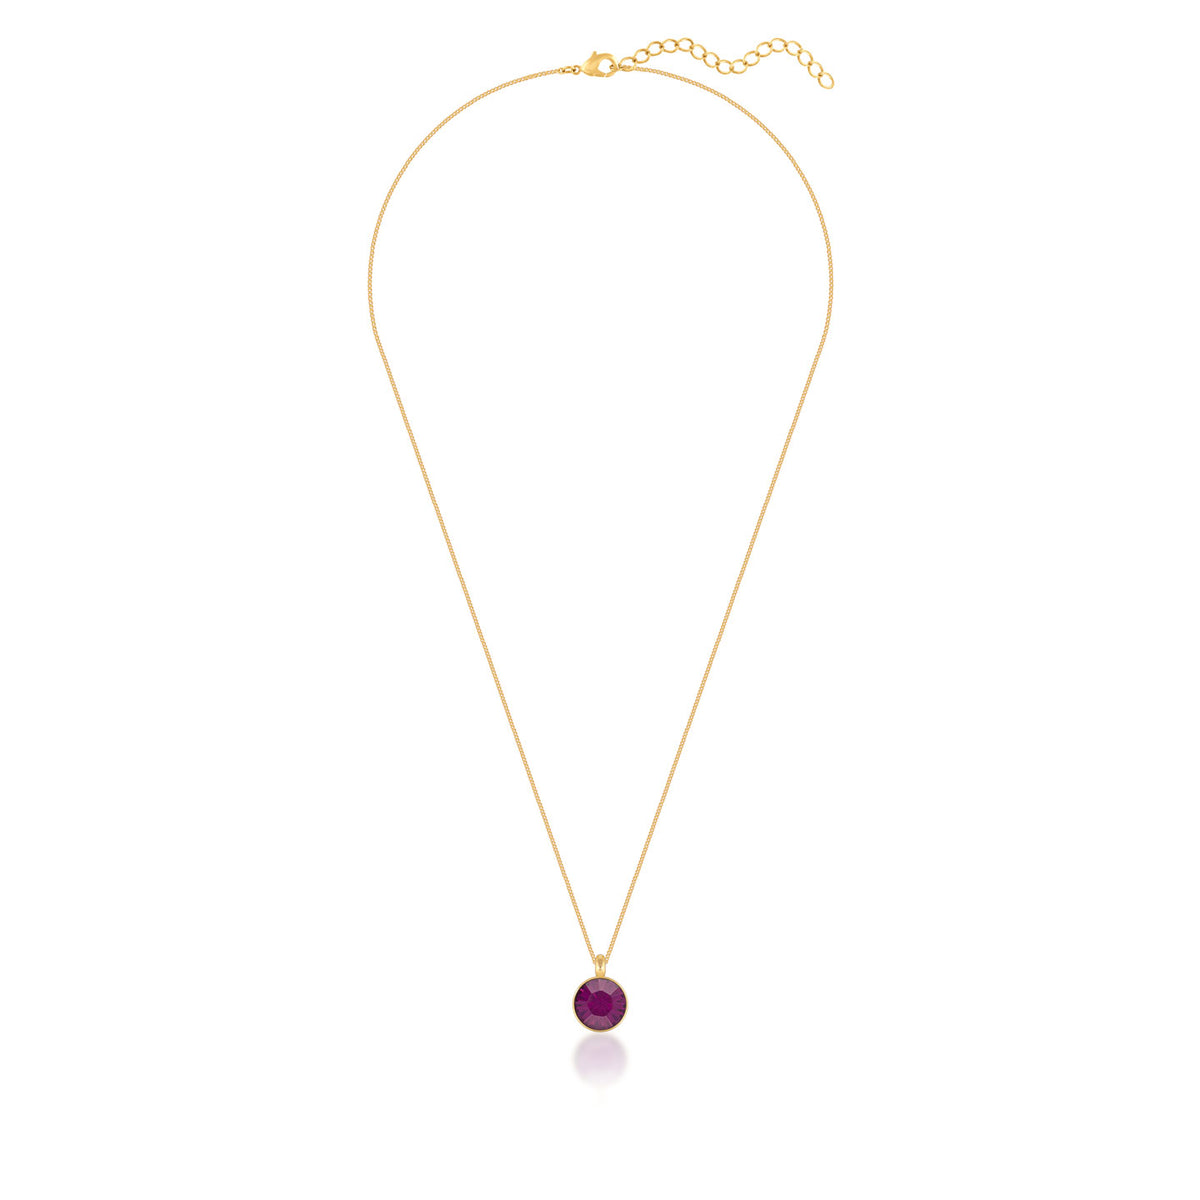 Bella Pendant Necklace with Purple Amethyst Round Crystals from Swarovski Gold Plated - Ed Heart